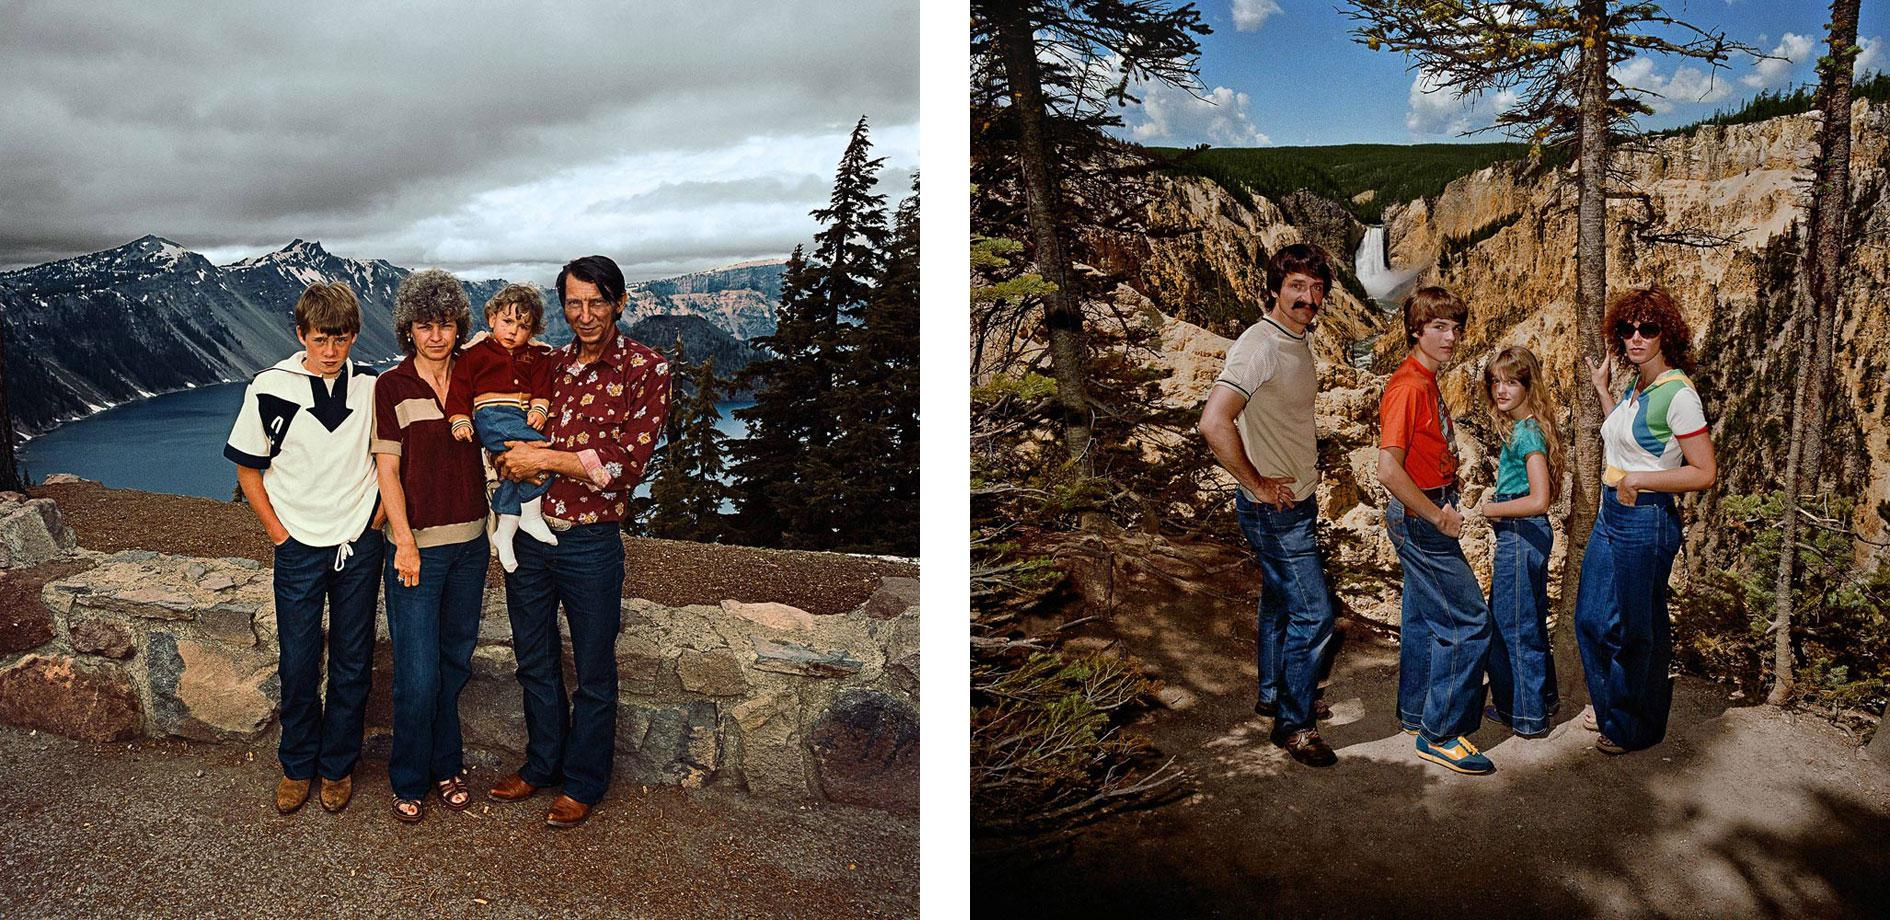 Family at Crater Lake National Park, OR. 1980 Family at Lower Falls Overlook, Yellowstone national Park, WY. 1980 (r)